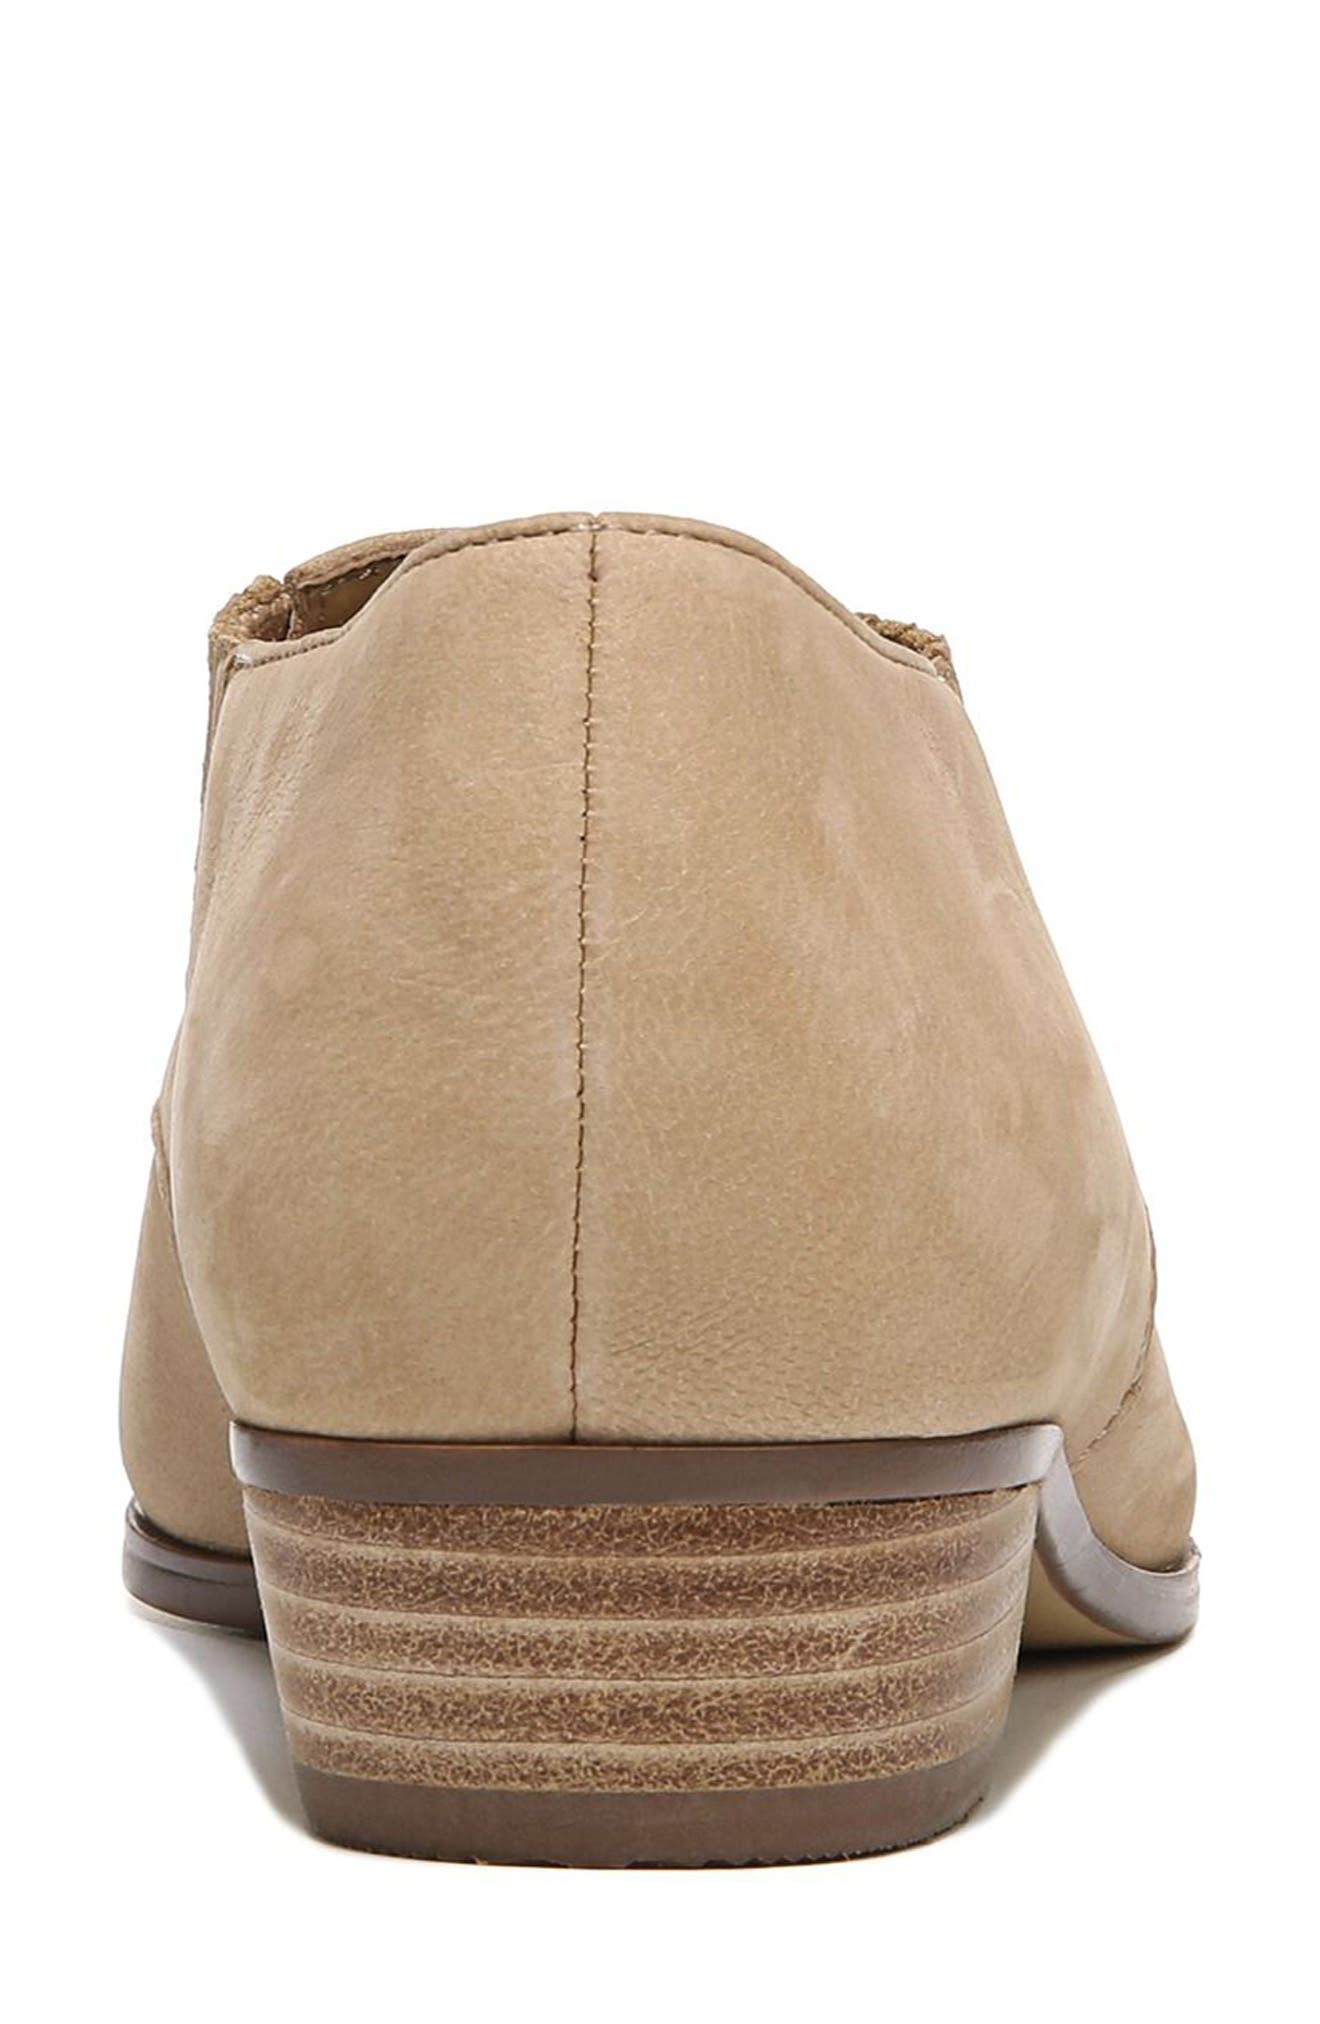 Blythe Bootie,                             Alternate thumbnail 8, color,                             Toasted Barley Nubuck